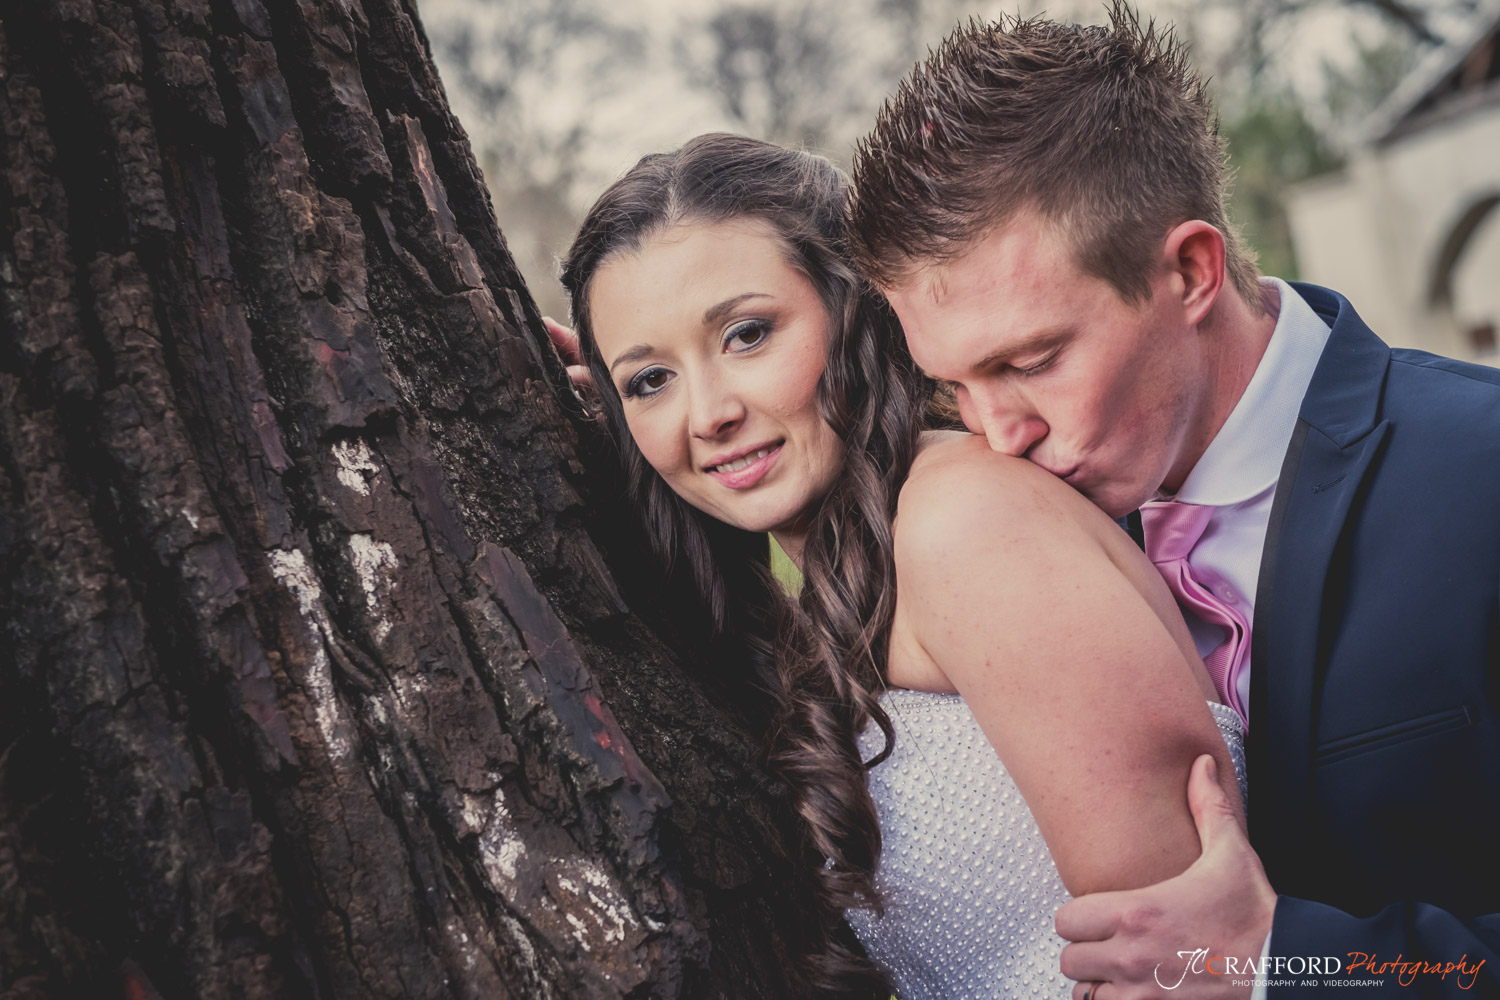 Gecko Ridge wedding photography by JC Crafford Photography